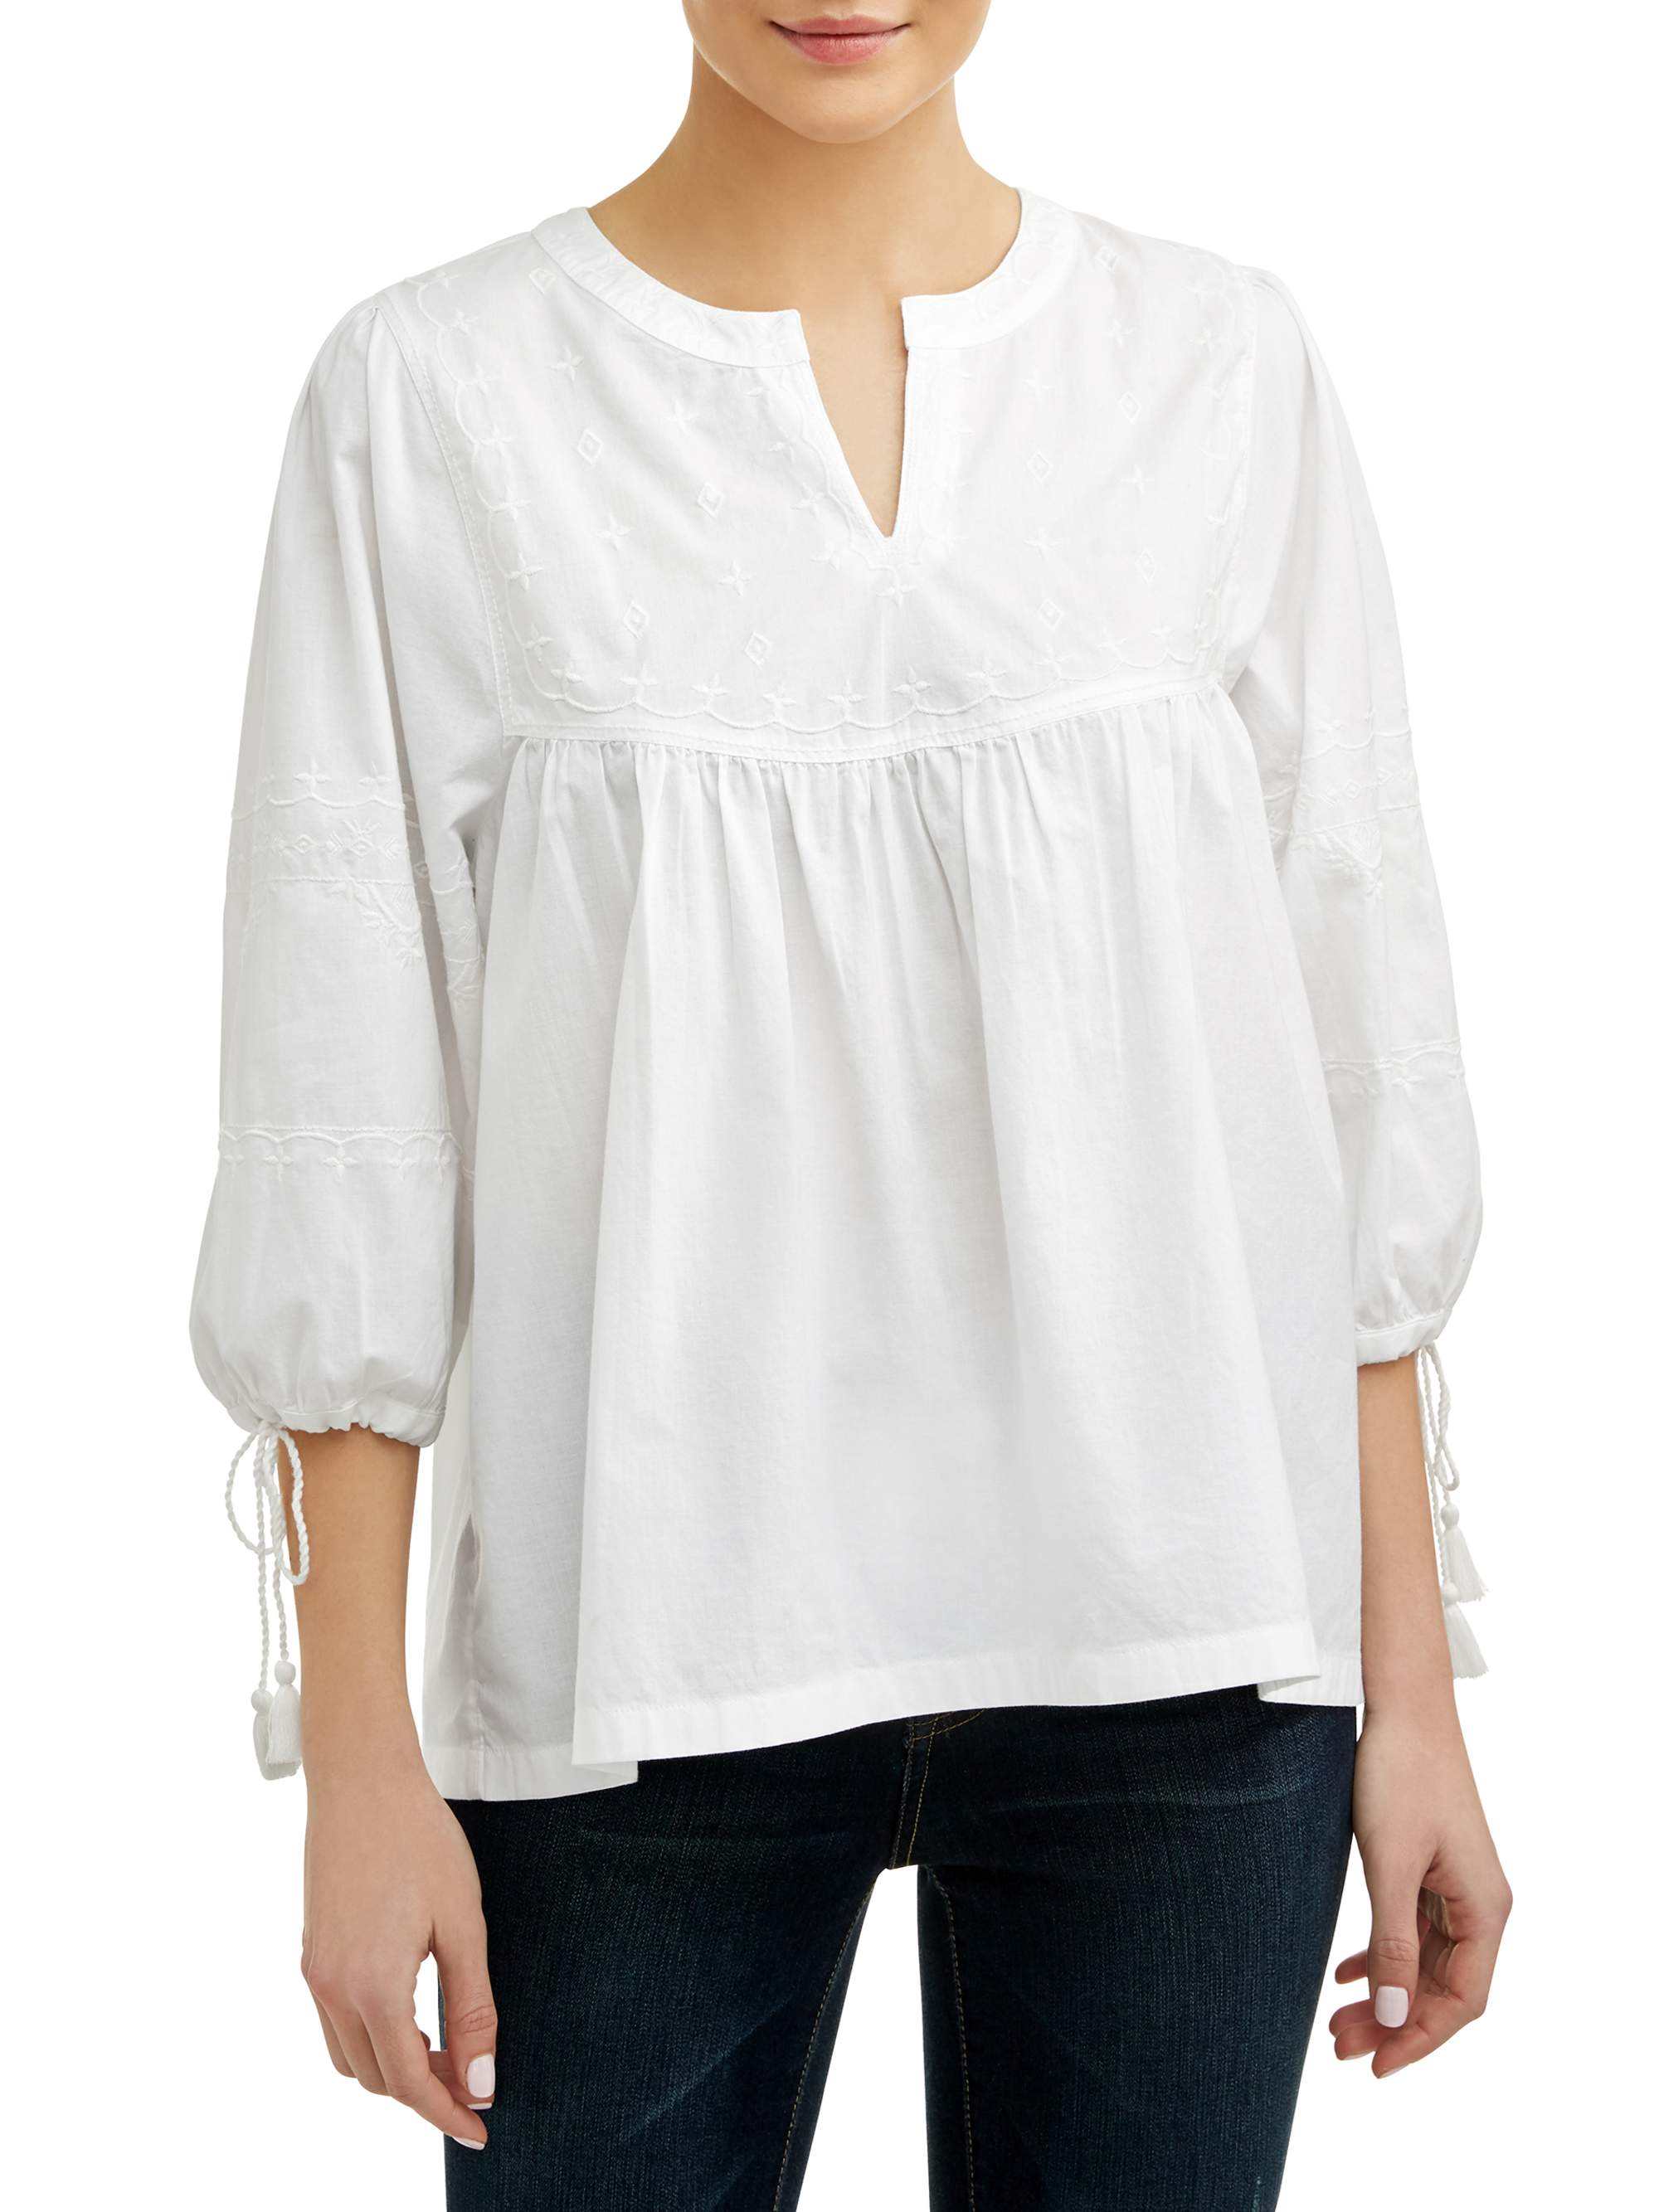 Women's Embroidered Neck Top